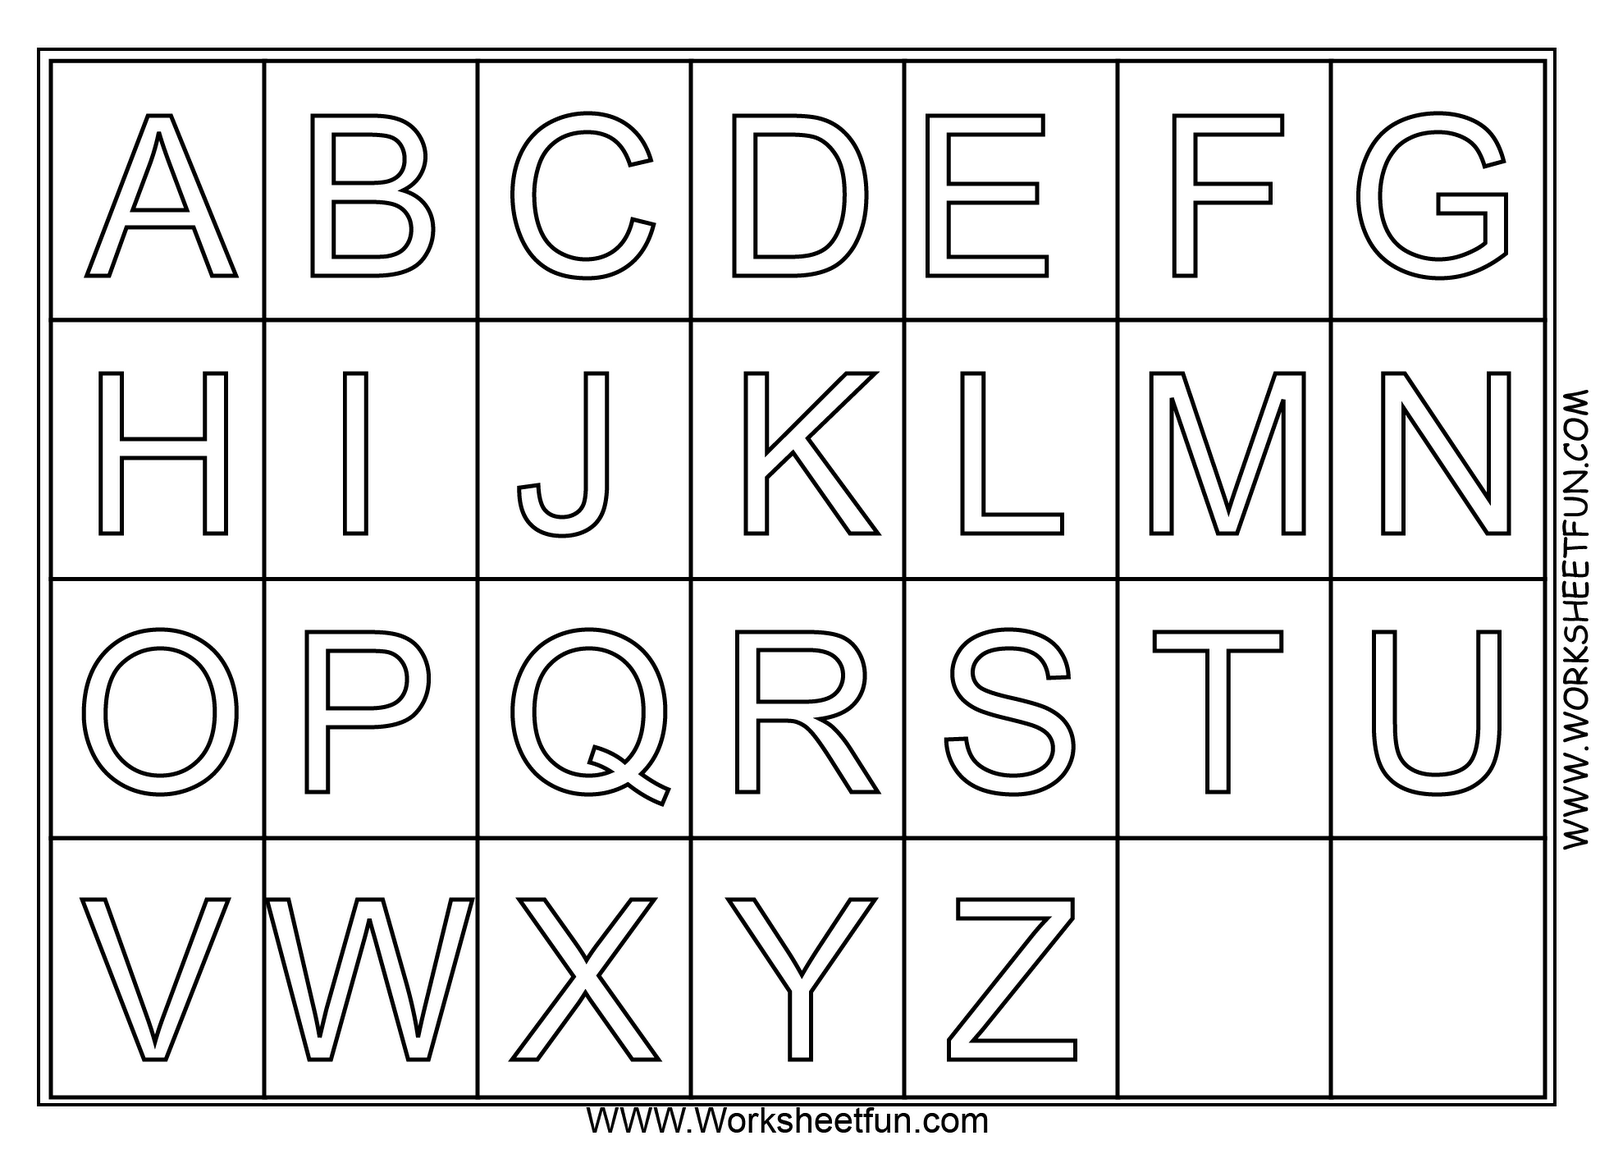 Free coloring pages for kindergarten printable - To Worksheet Letters Coloring Worksheets For Preschool